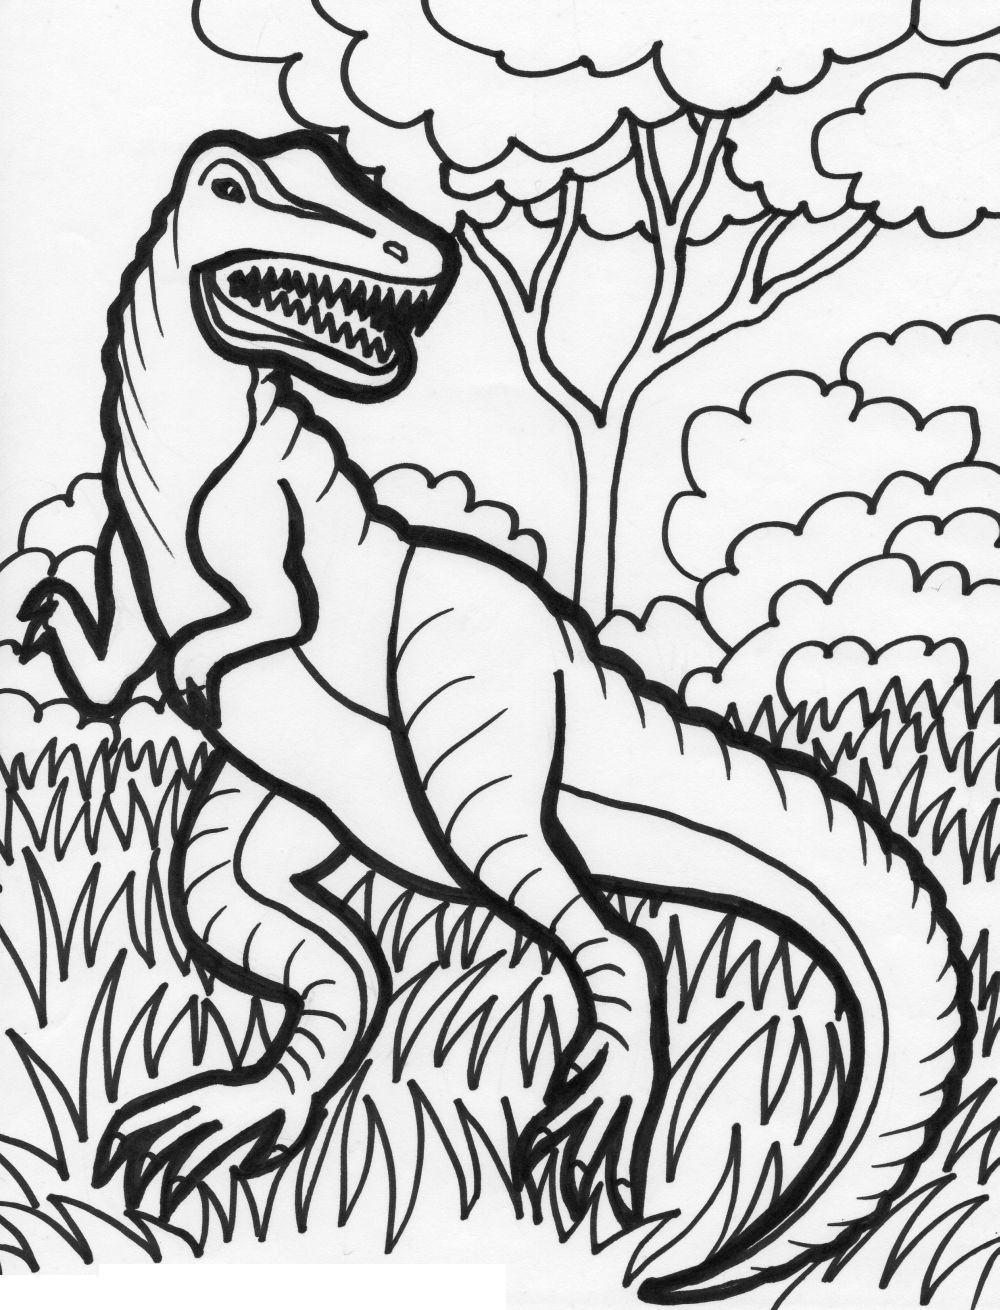 free-dinosaur-coloring-pages_309820